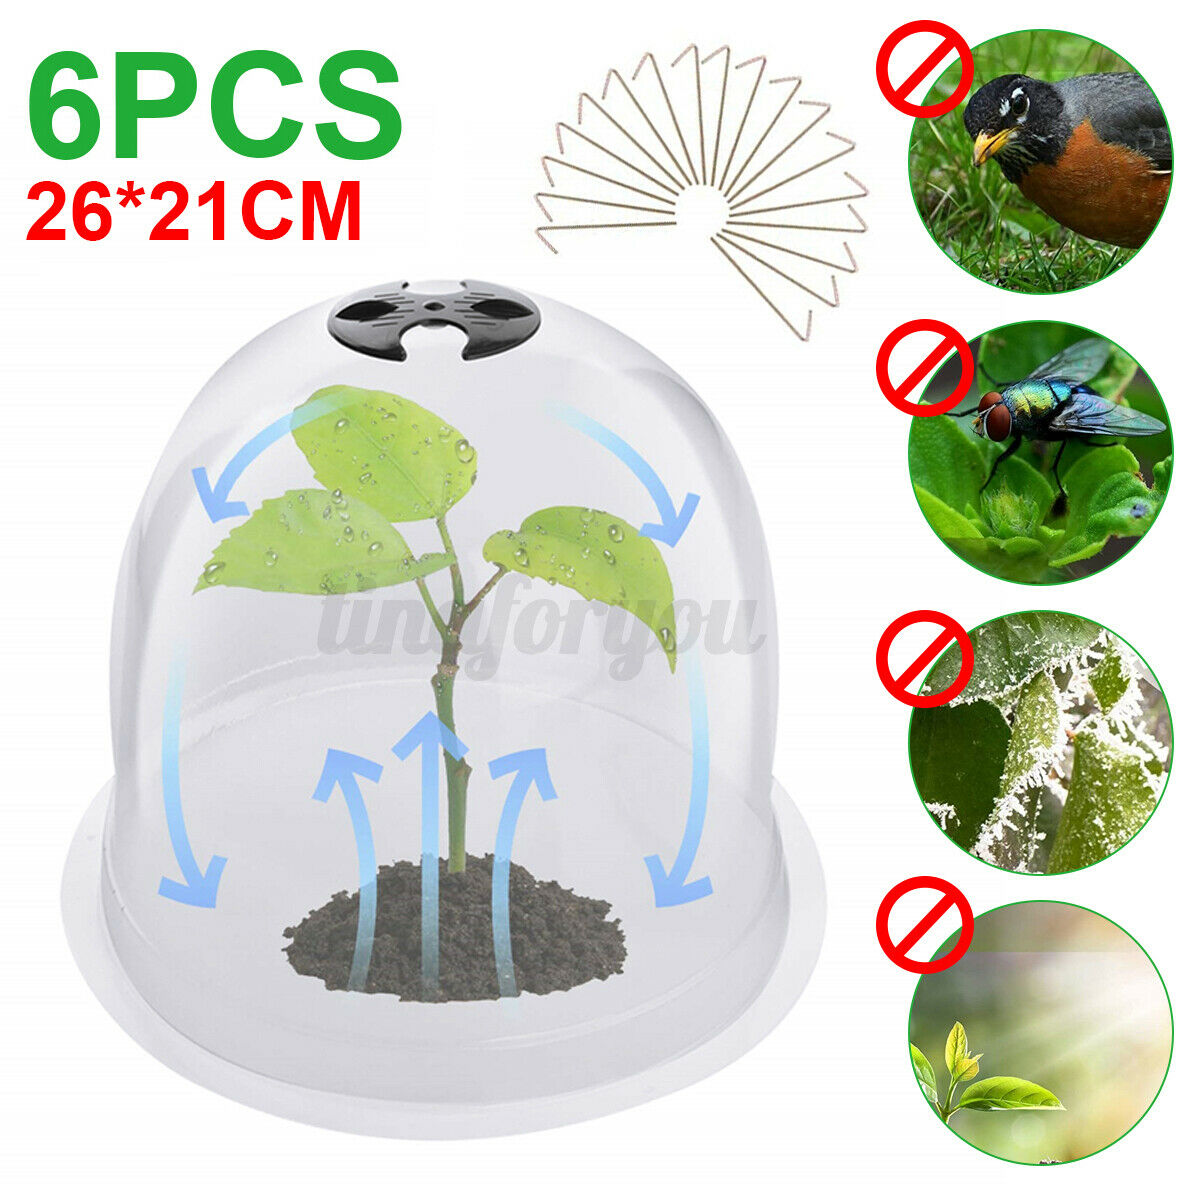 6 Pack Large Cloche Bell Cover Plant Garden Frost Greenhouse Pest Protection